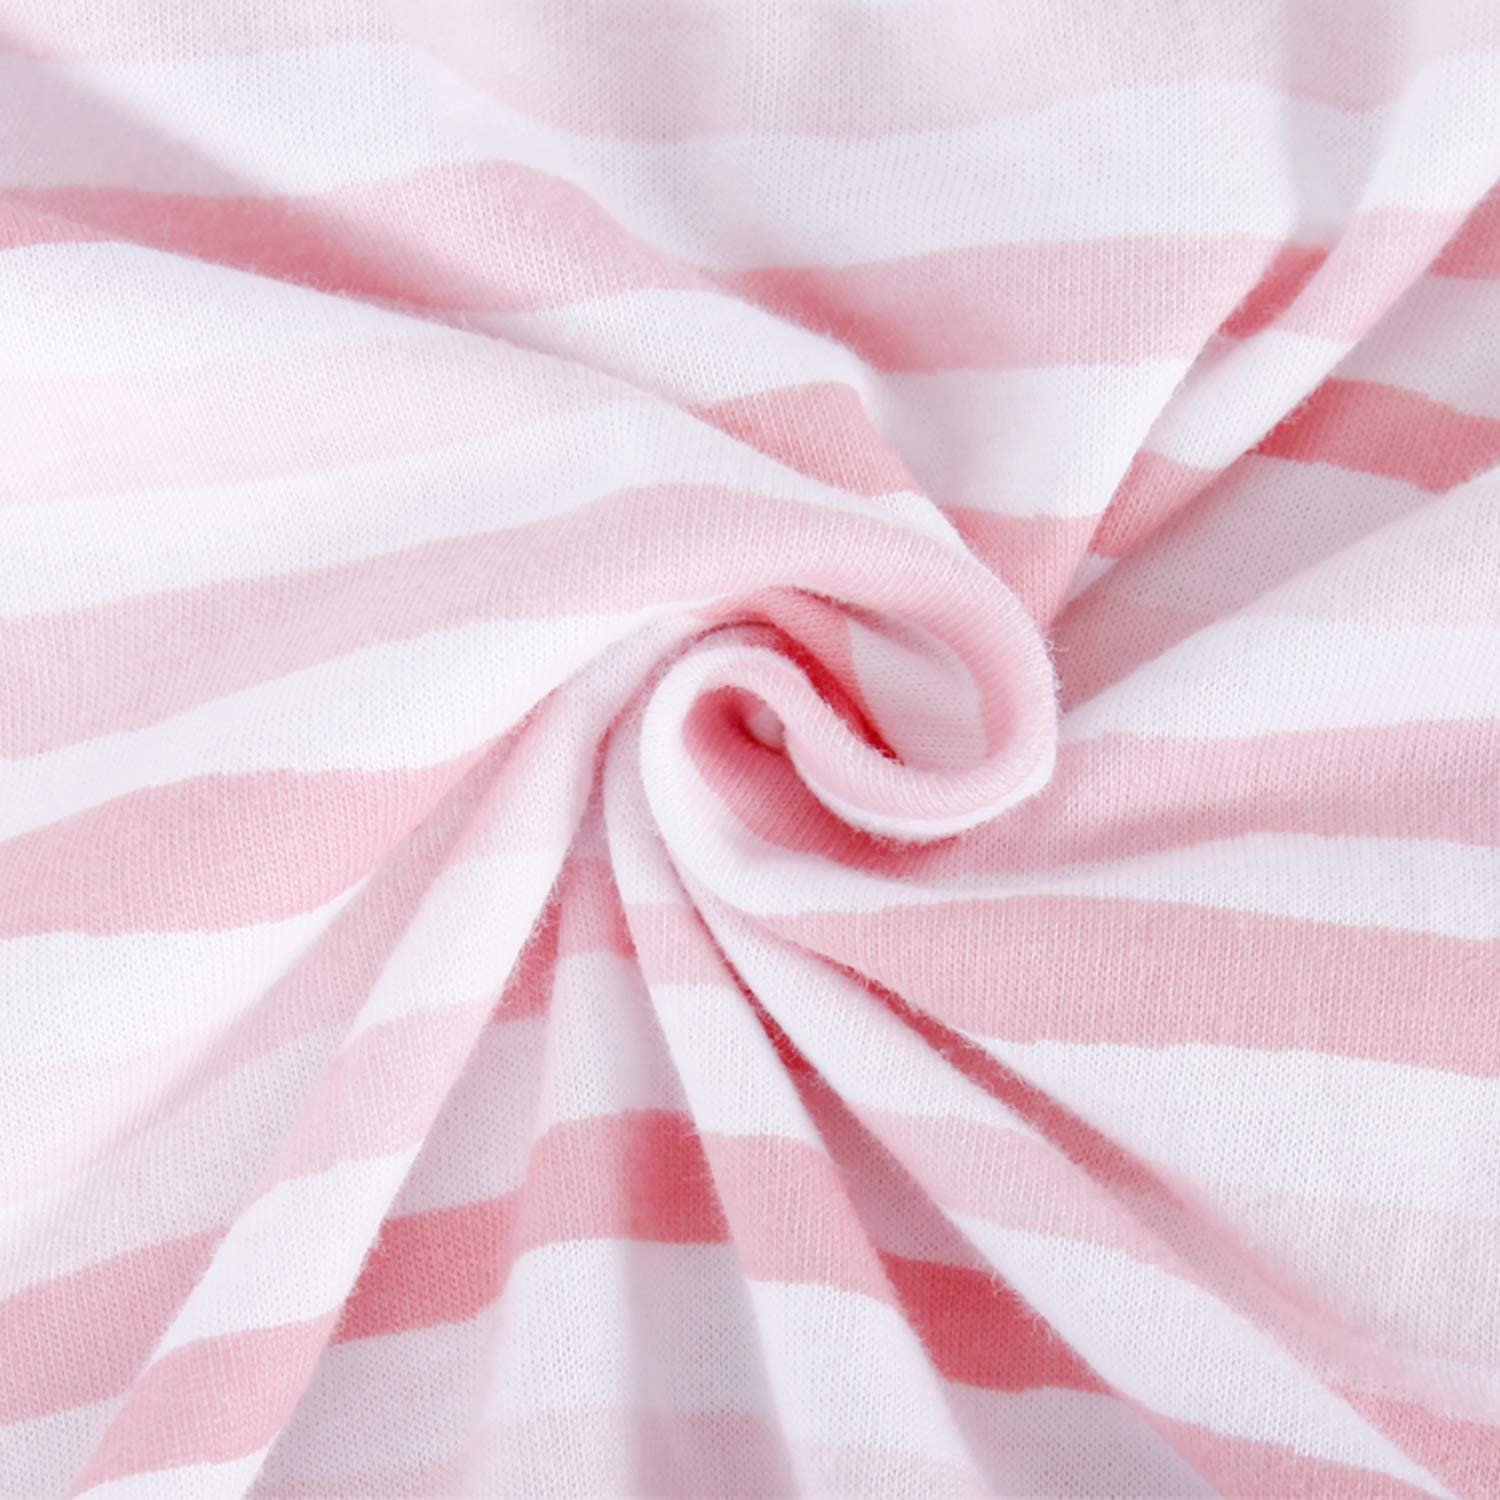 Cot Sheet Fitted for Standard Cot Mattress Pink Stripes Print for Girls 60x120cm SPRINGSPIRIT 100/% Cotton Jersey Sheet Ultra Soft Toddler /& Baby Bed Sheet